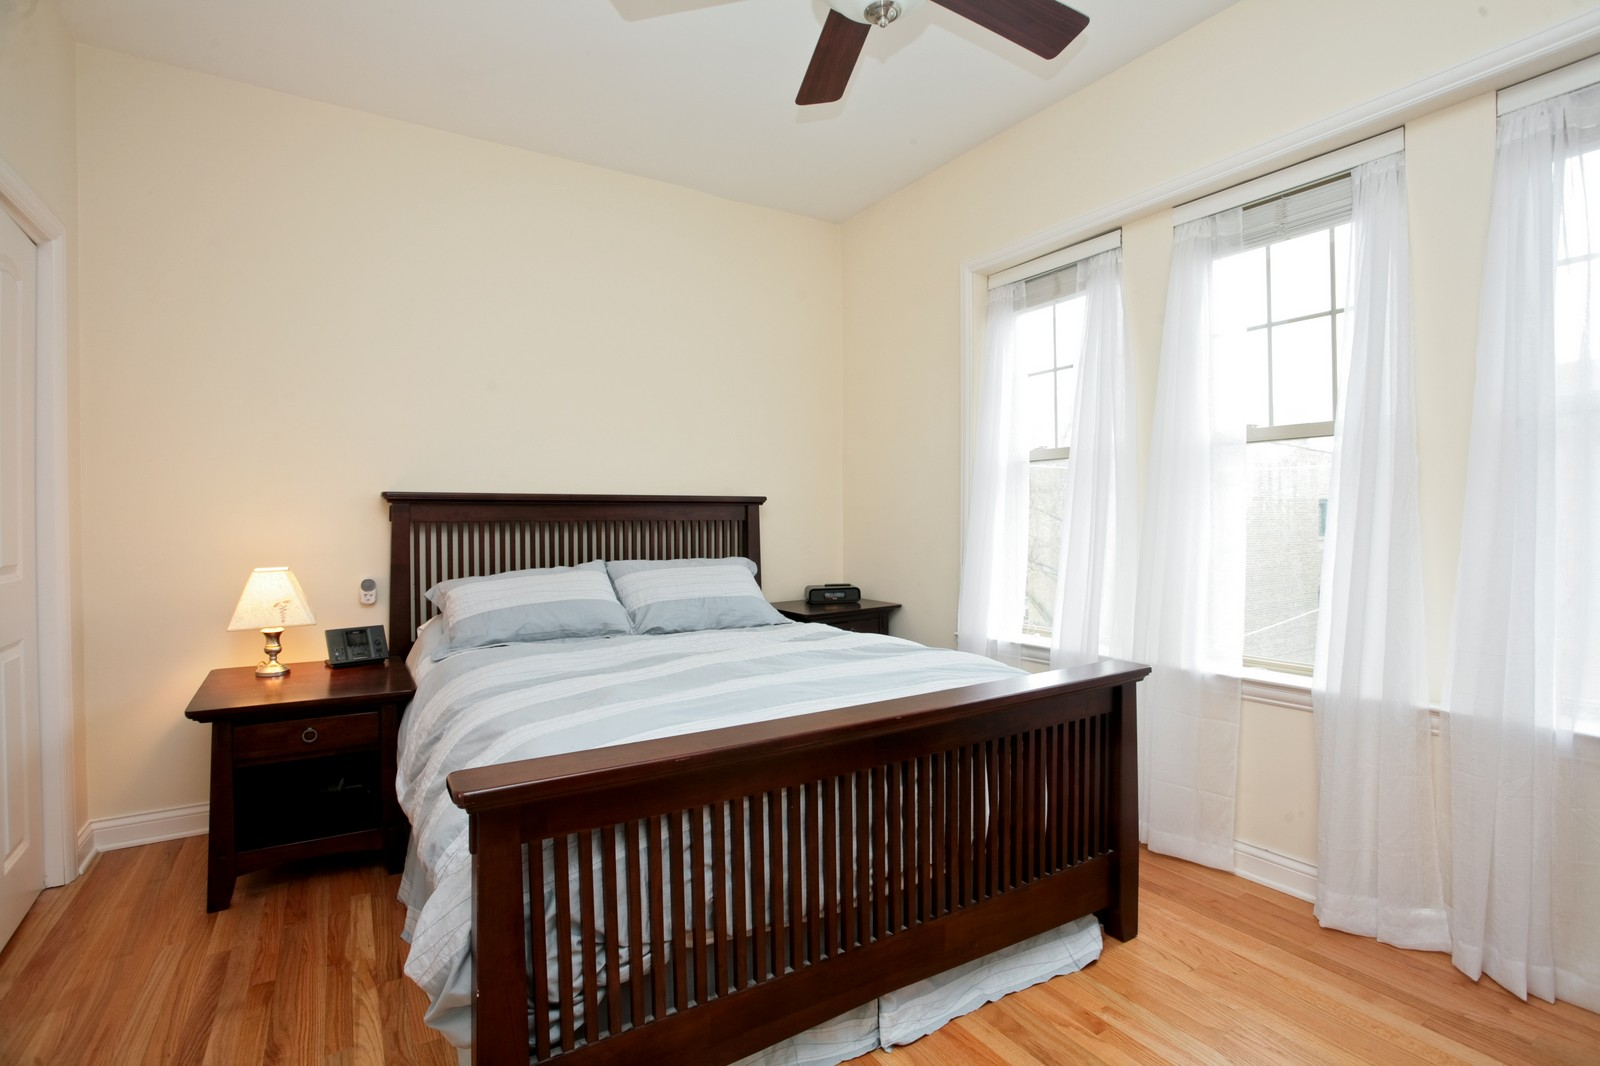 Real Estate Photography - 2646 W Gunnison St, Unit 2, Chicago, IL, 60625 - Master Bedroom